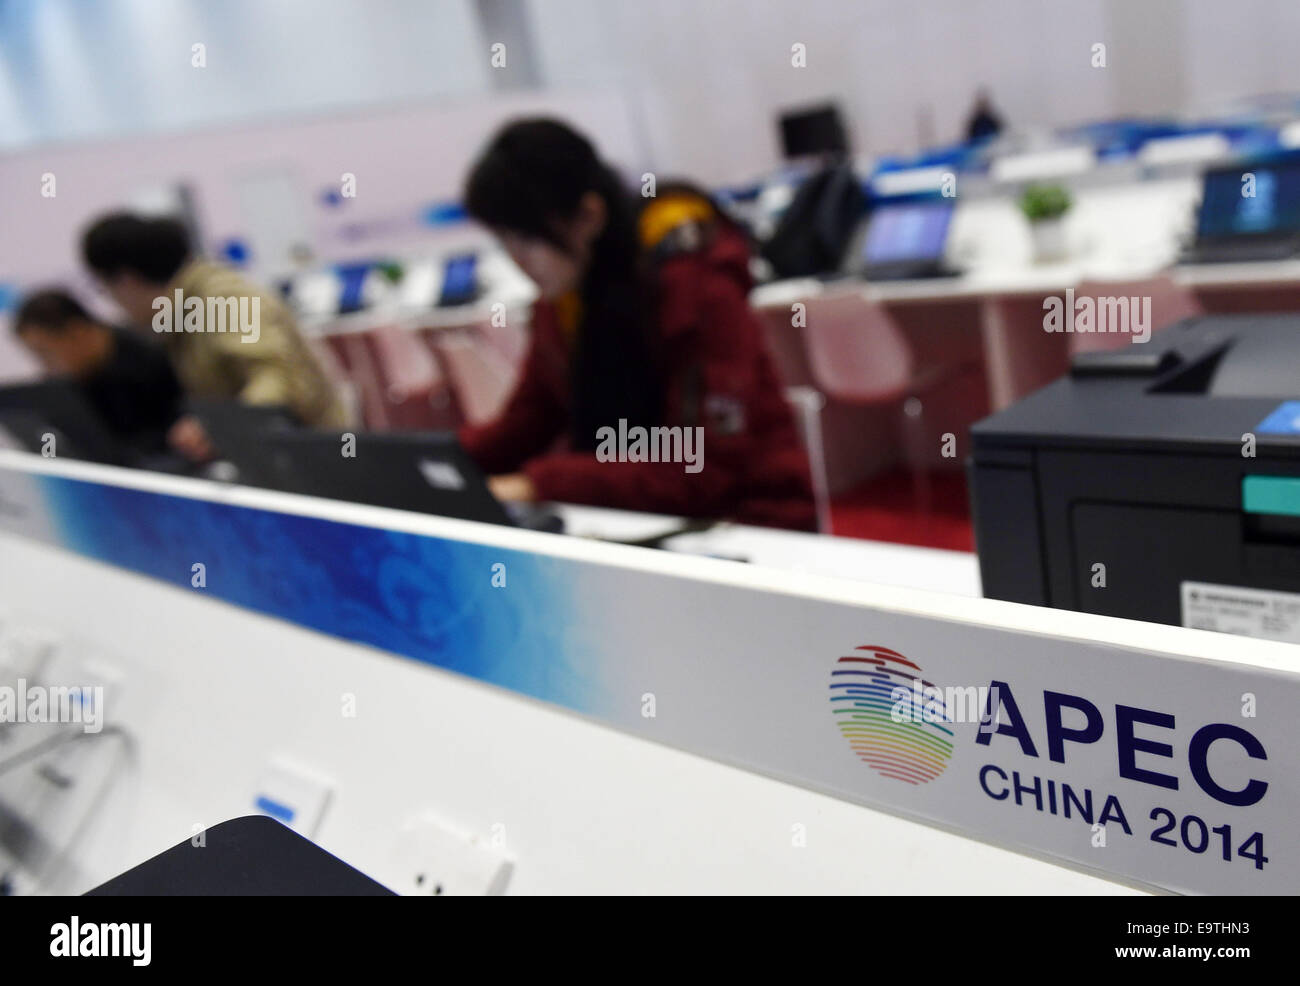 Beijing, China. 2nd Nov, 2014. Journalists experience the working condition in the media center for the 2014 Asia - Stock Image